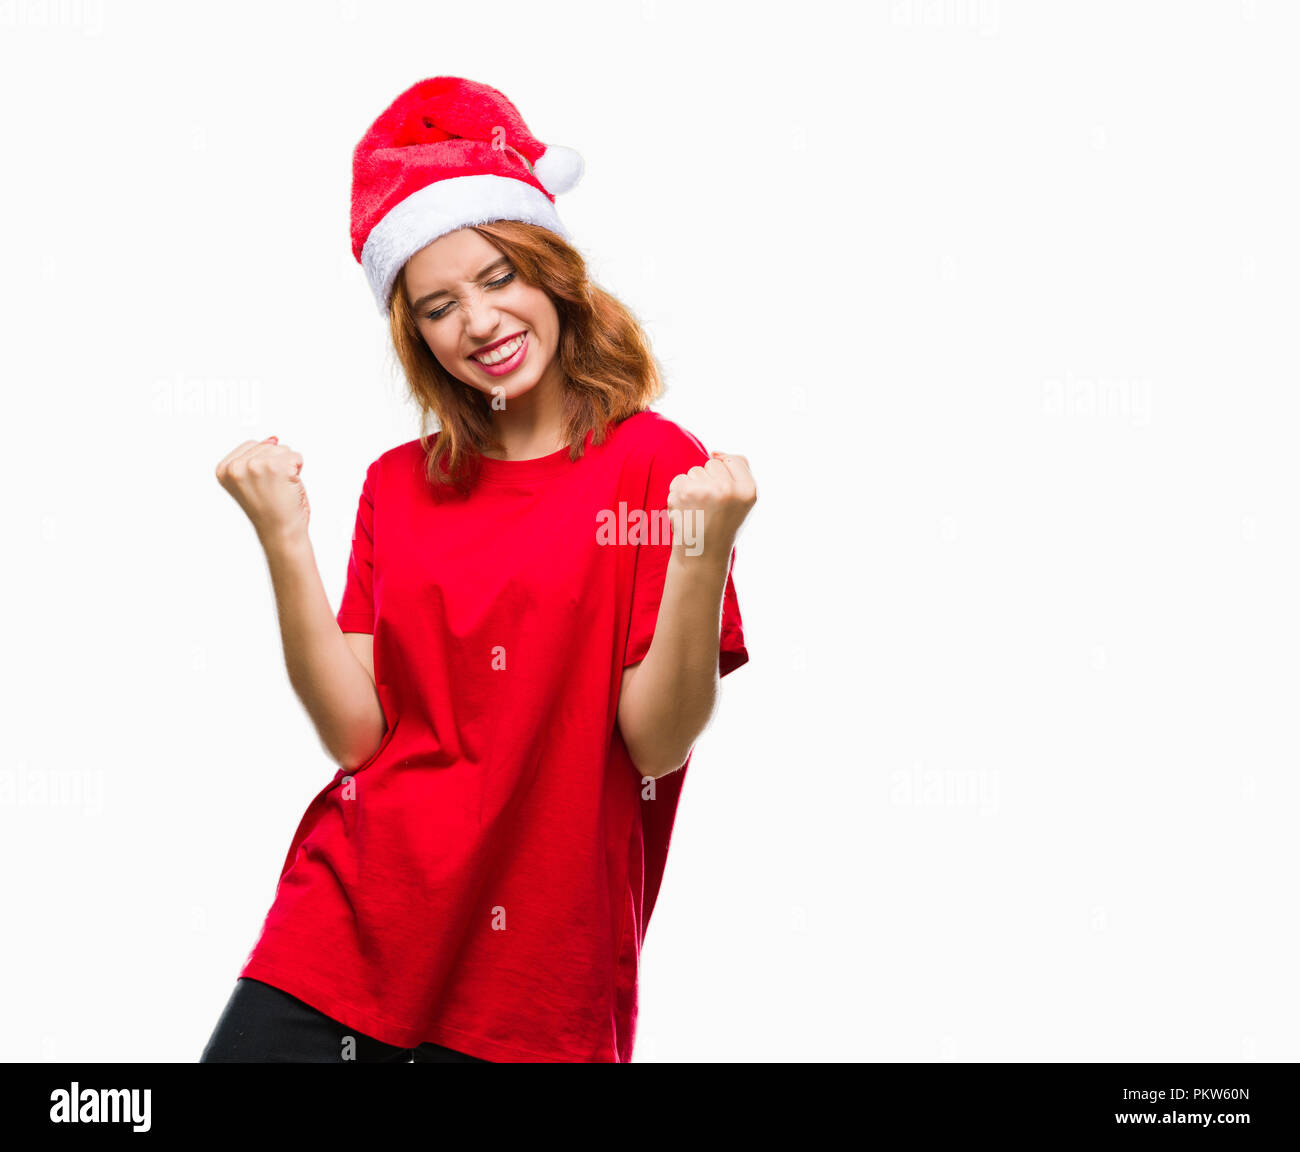 Young beautiful woman over isolated background wearing christmas hat very happy and excited doing winner gesture with arms raised, smiling and screami - Stock Image